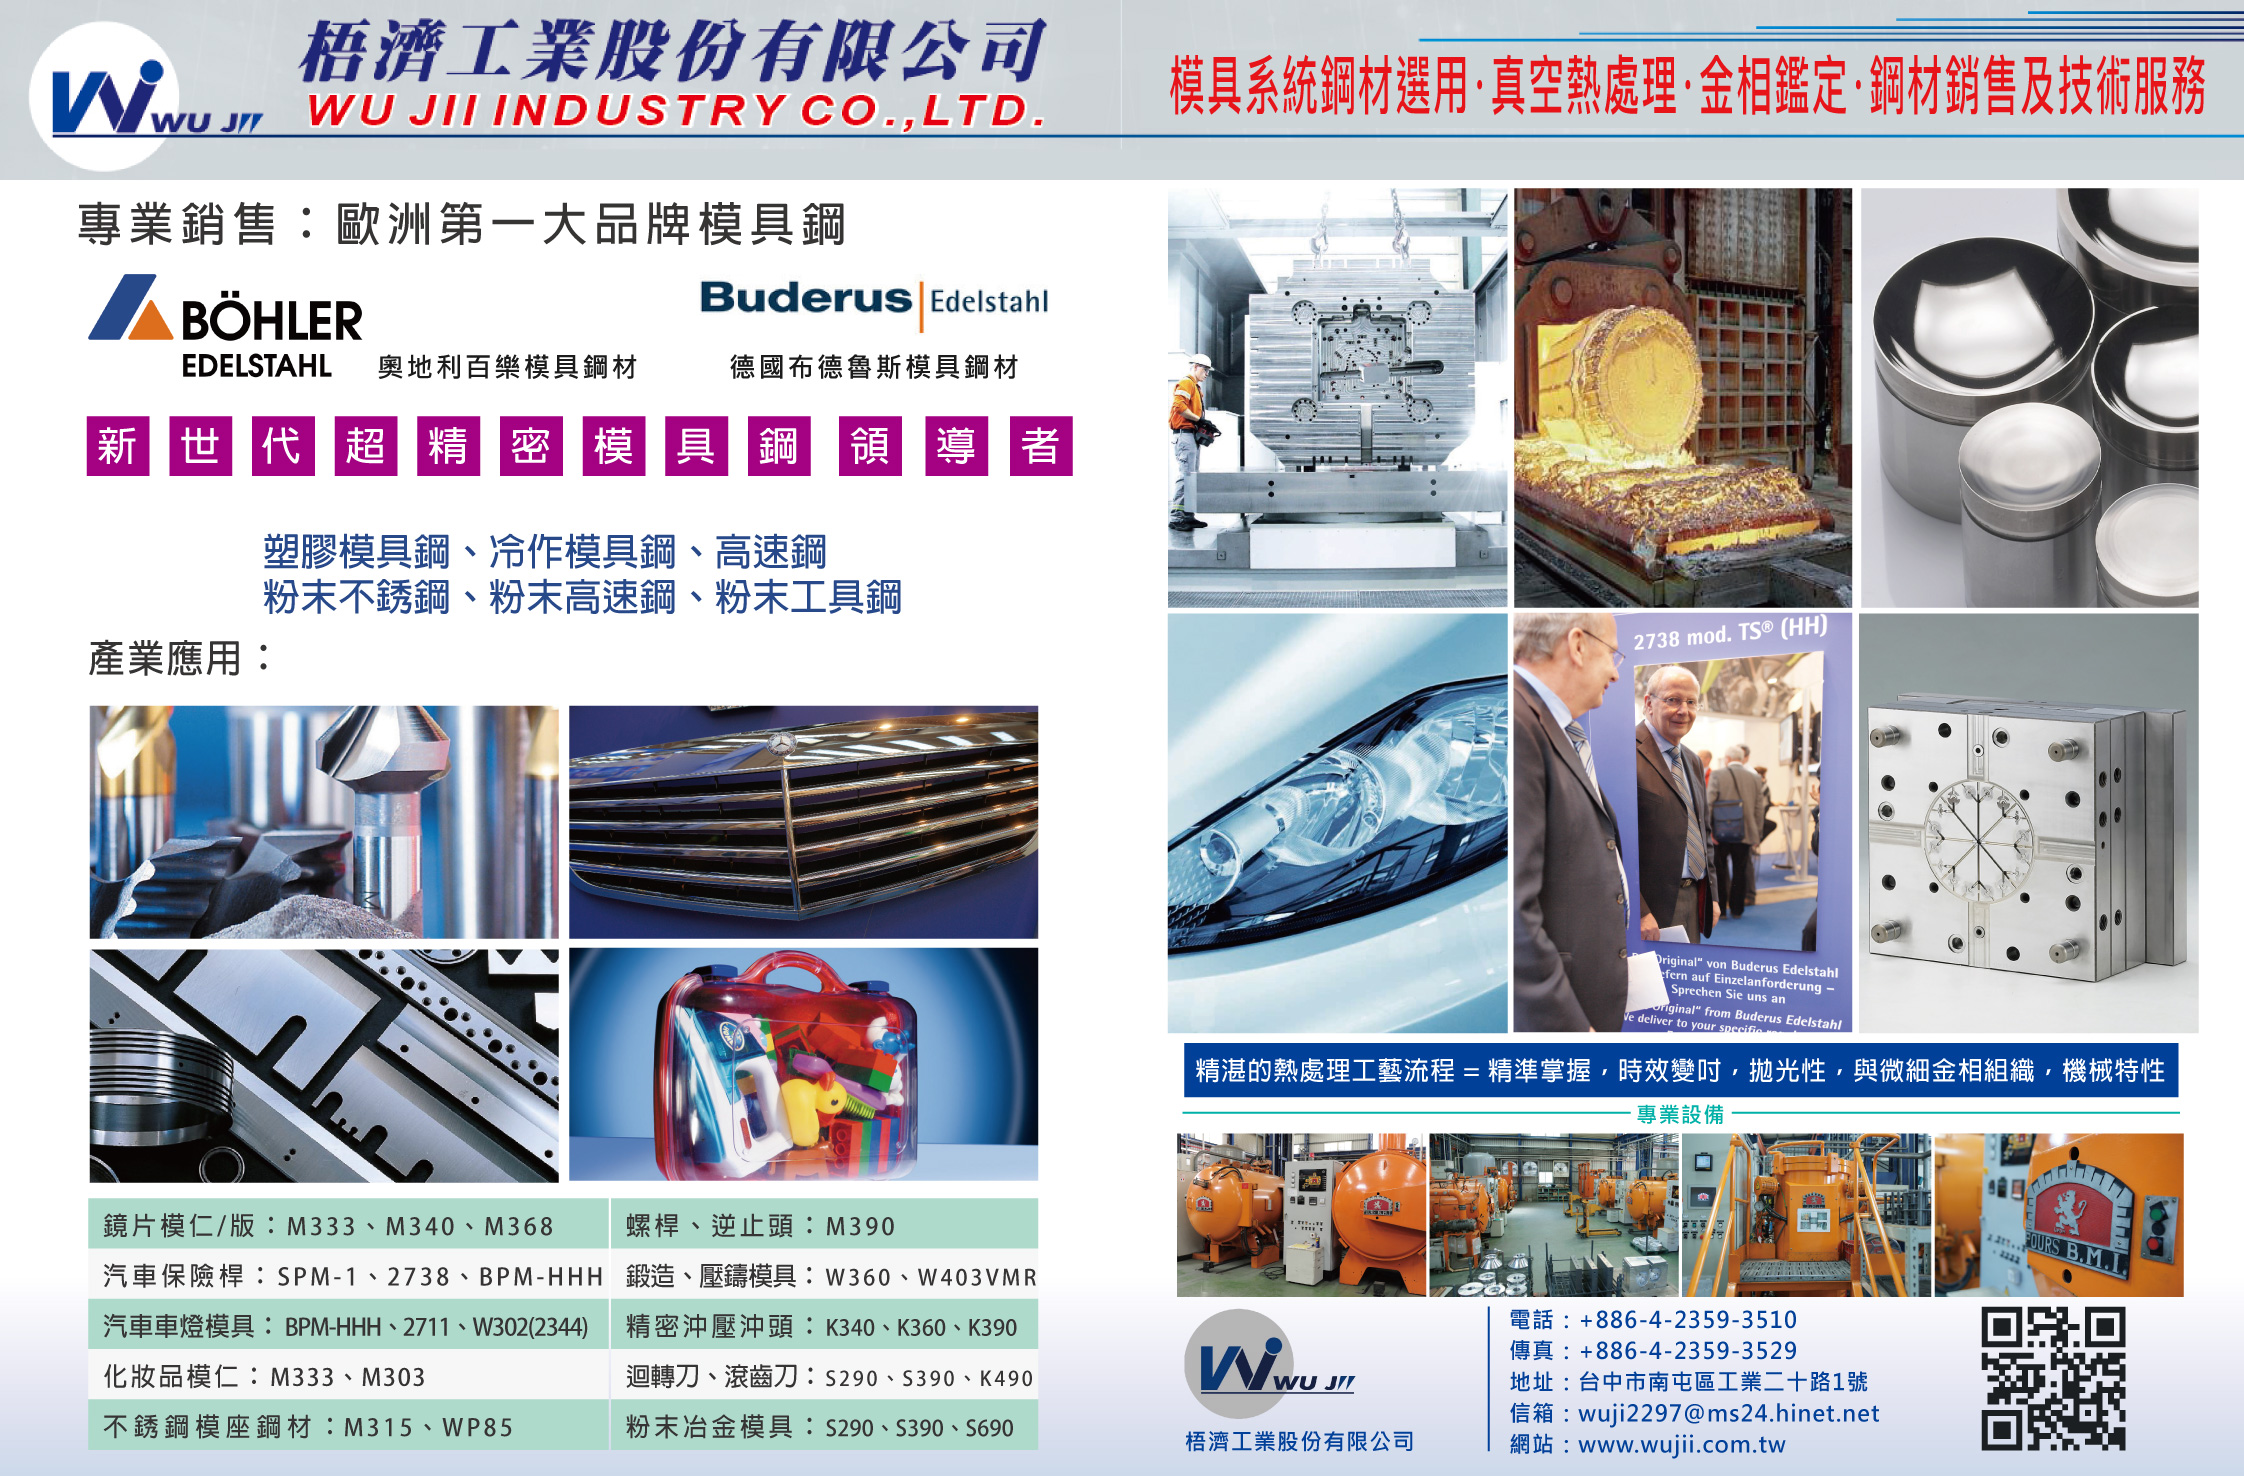 WU JII INDUSTRY CO., LTD.